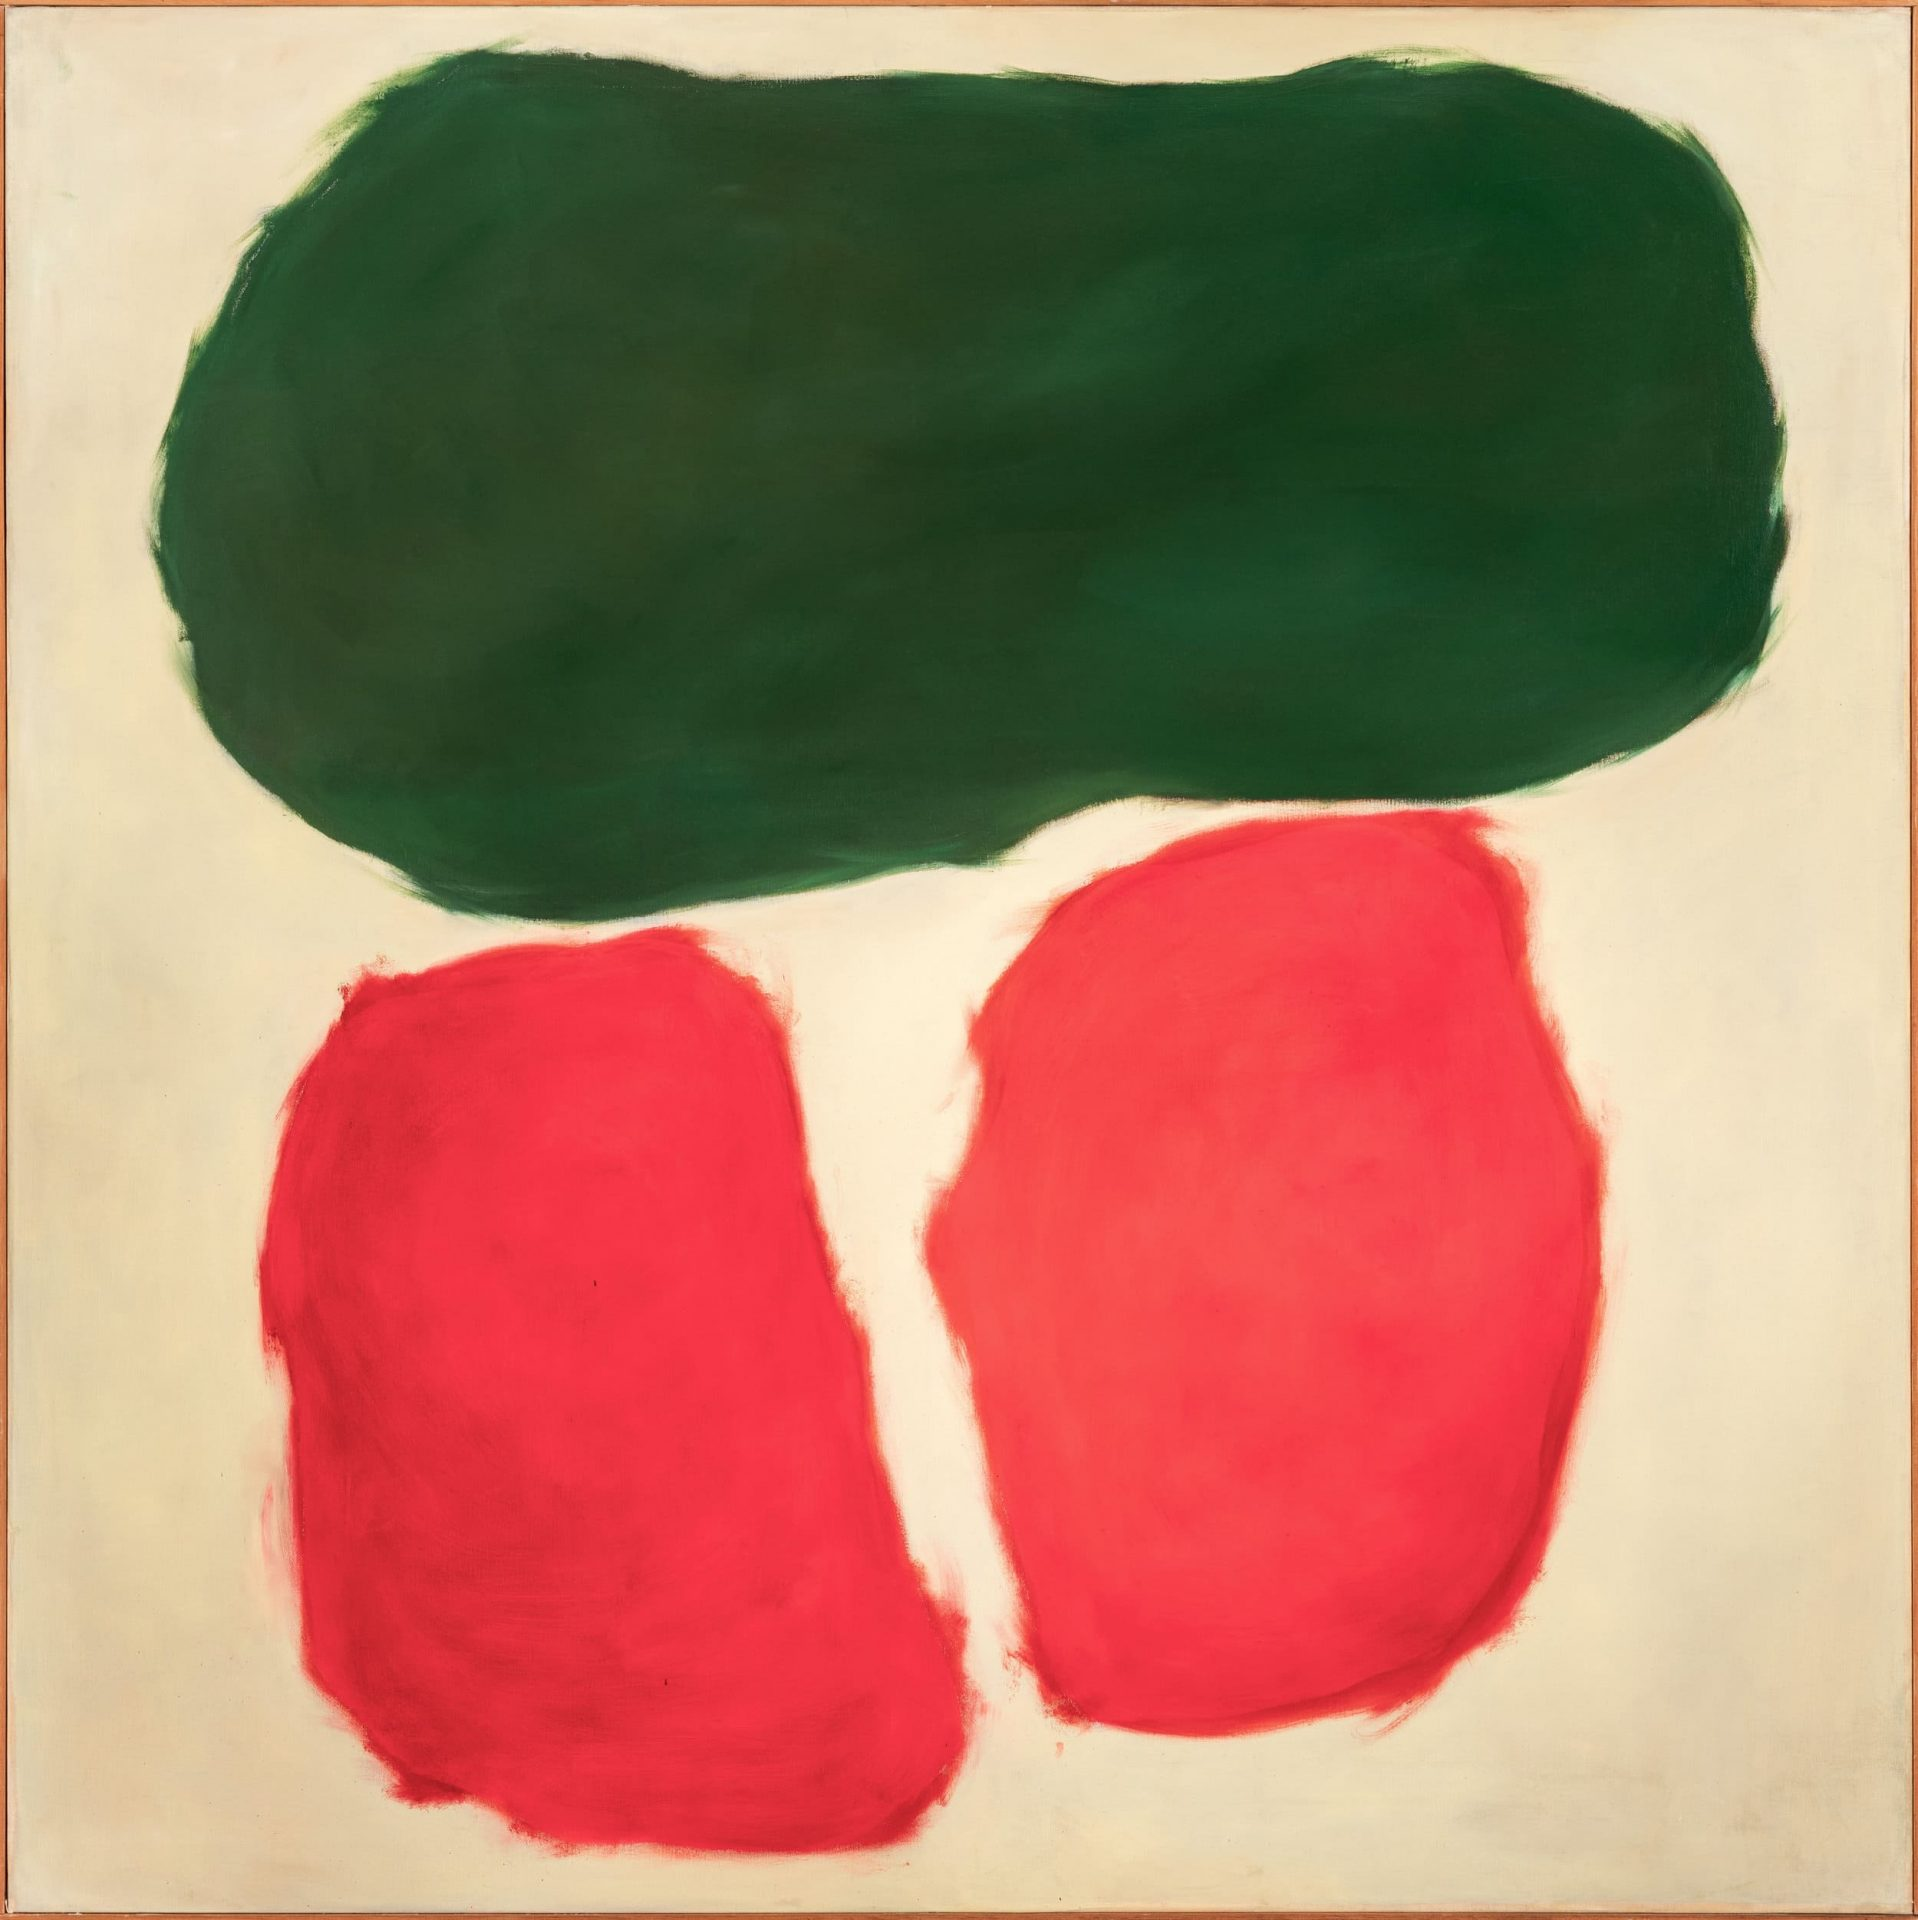 green abstract shape above two red abstract shapes